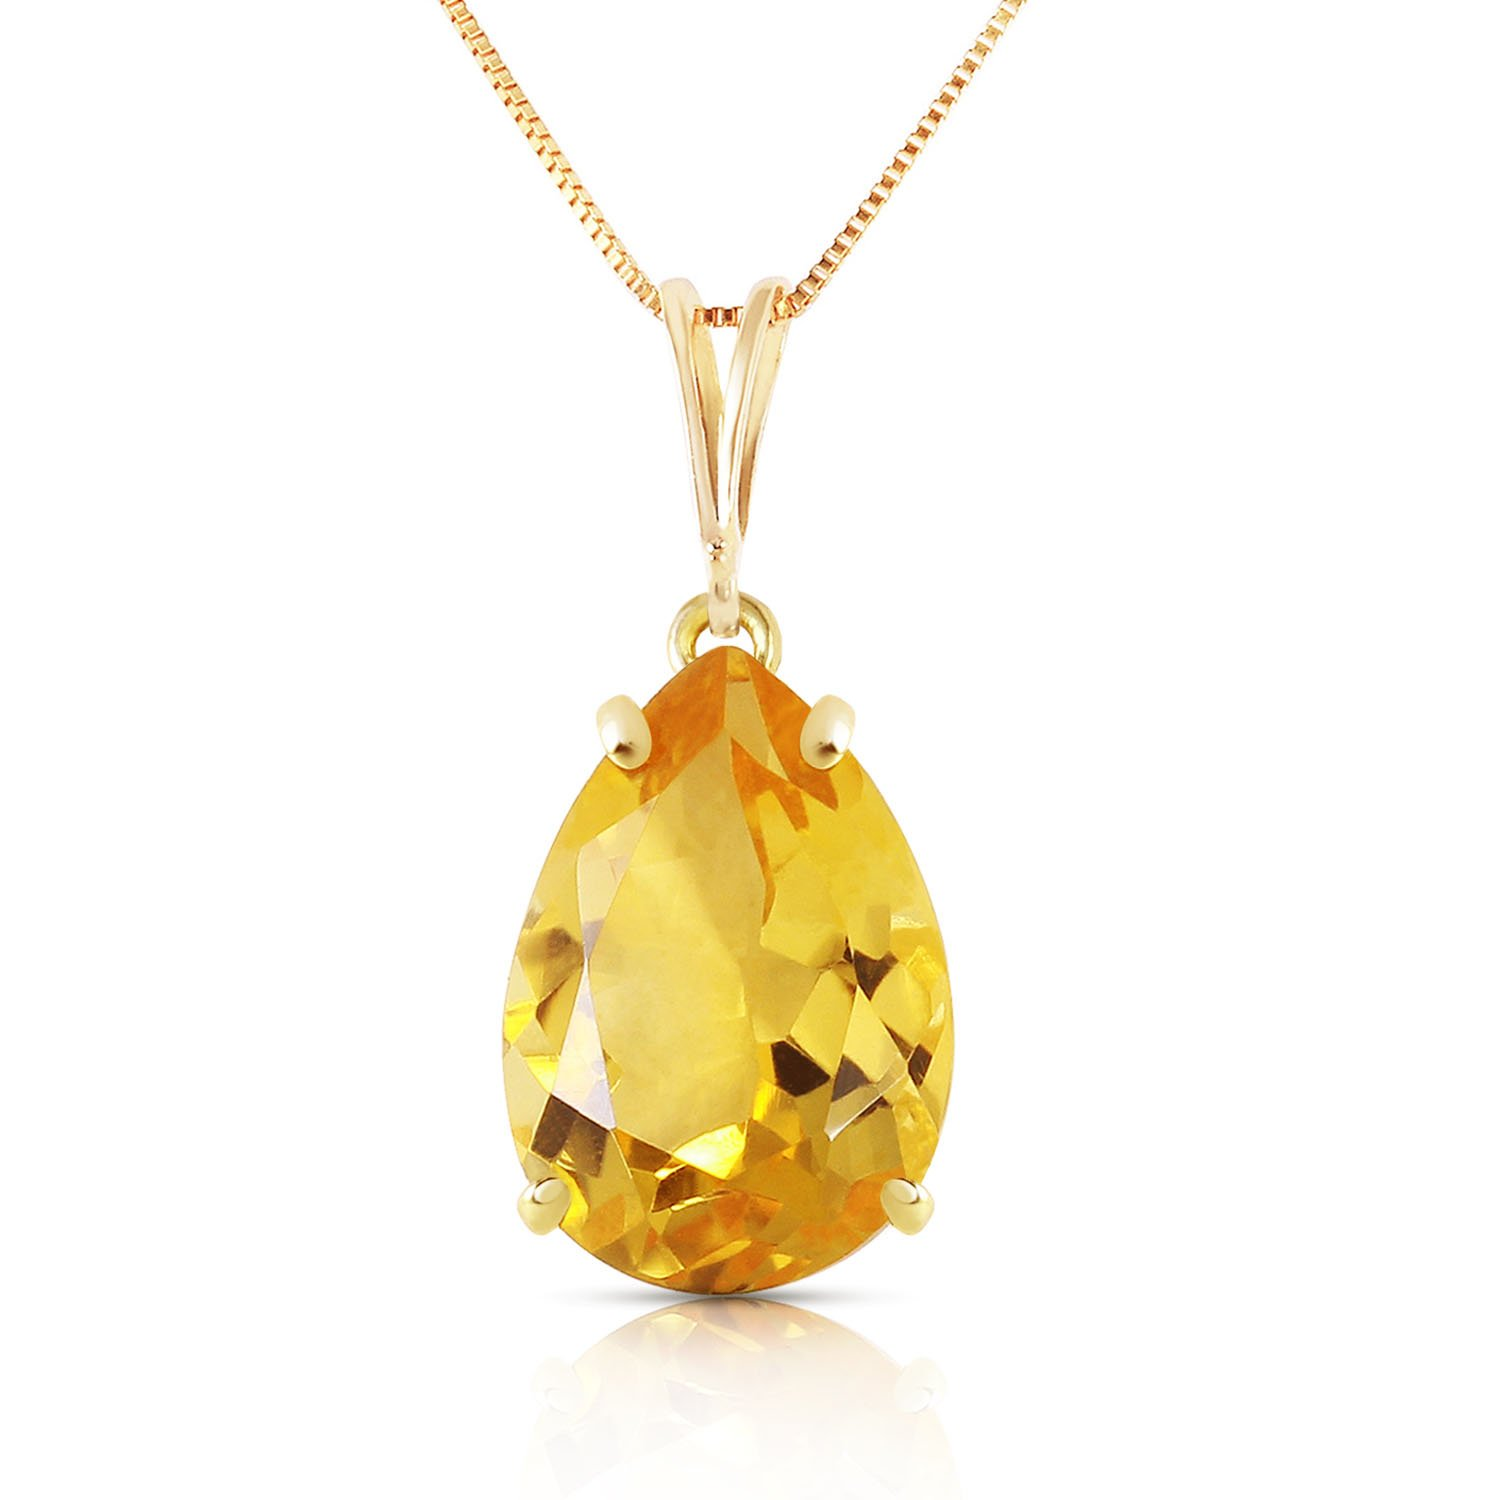 14k 24'' Yellow Gold Necklace with Genuine 5 Carat Citrine Pendant